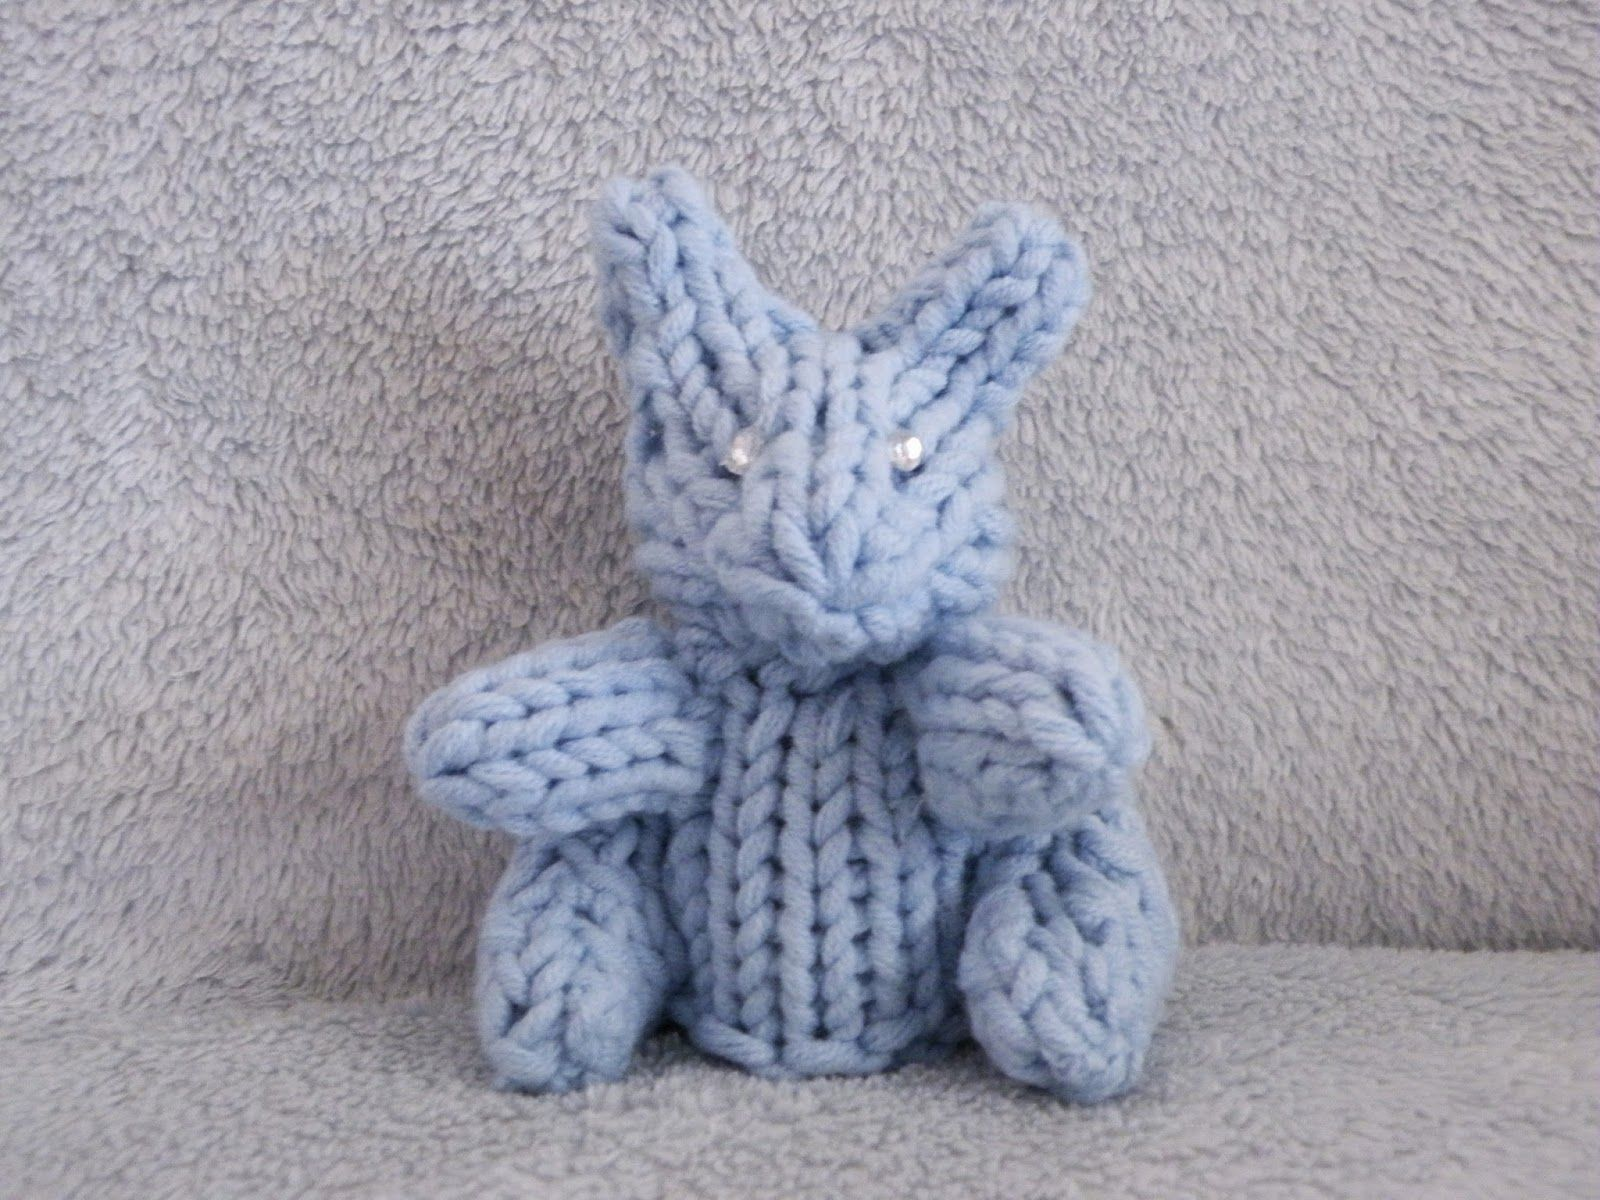 Amigurumi Loom Patterns : The loom muse : how to loom a mini rabbit loom knitting stuffed